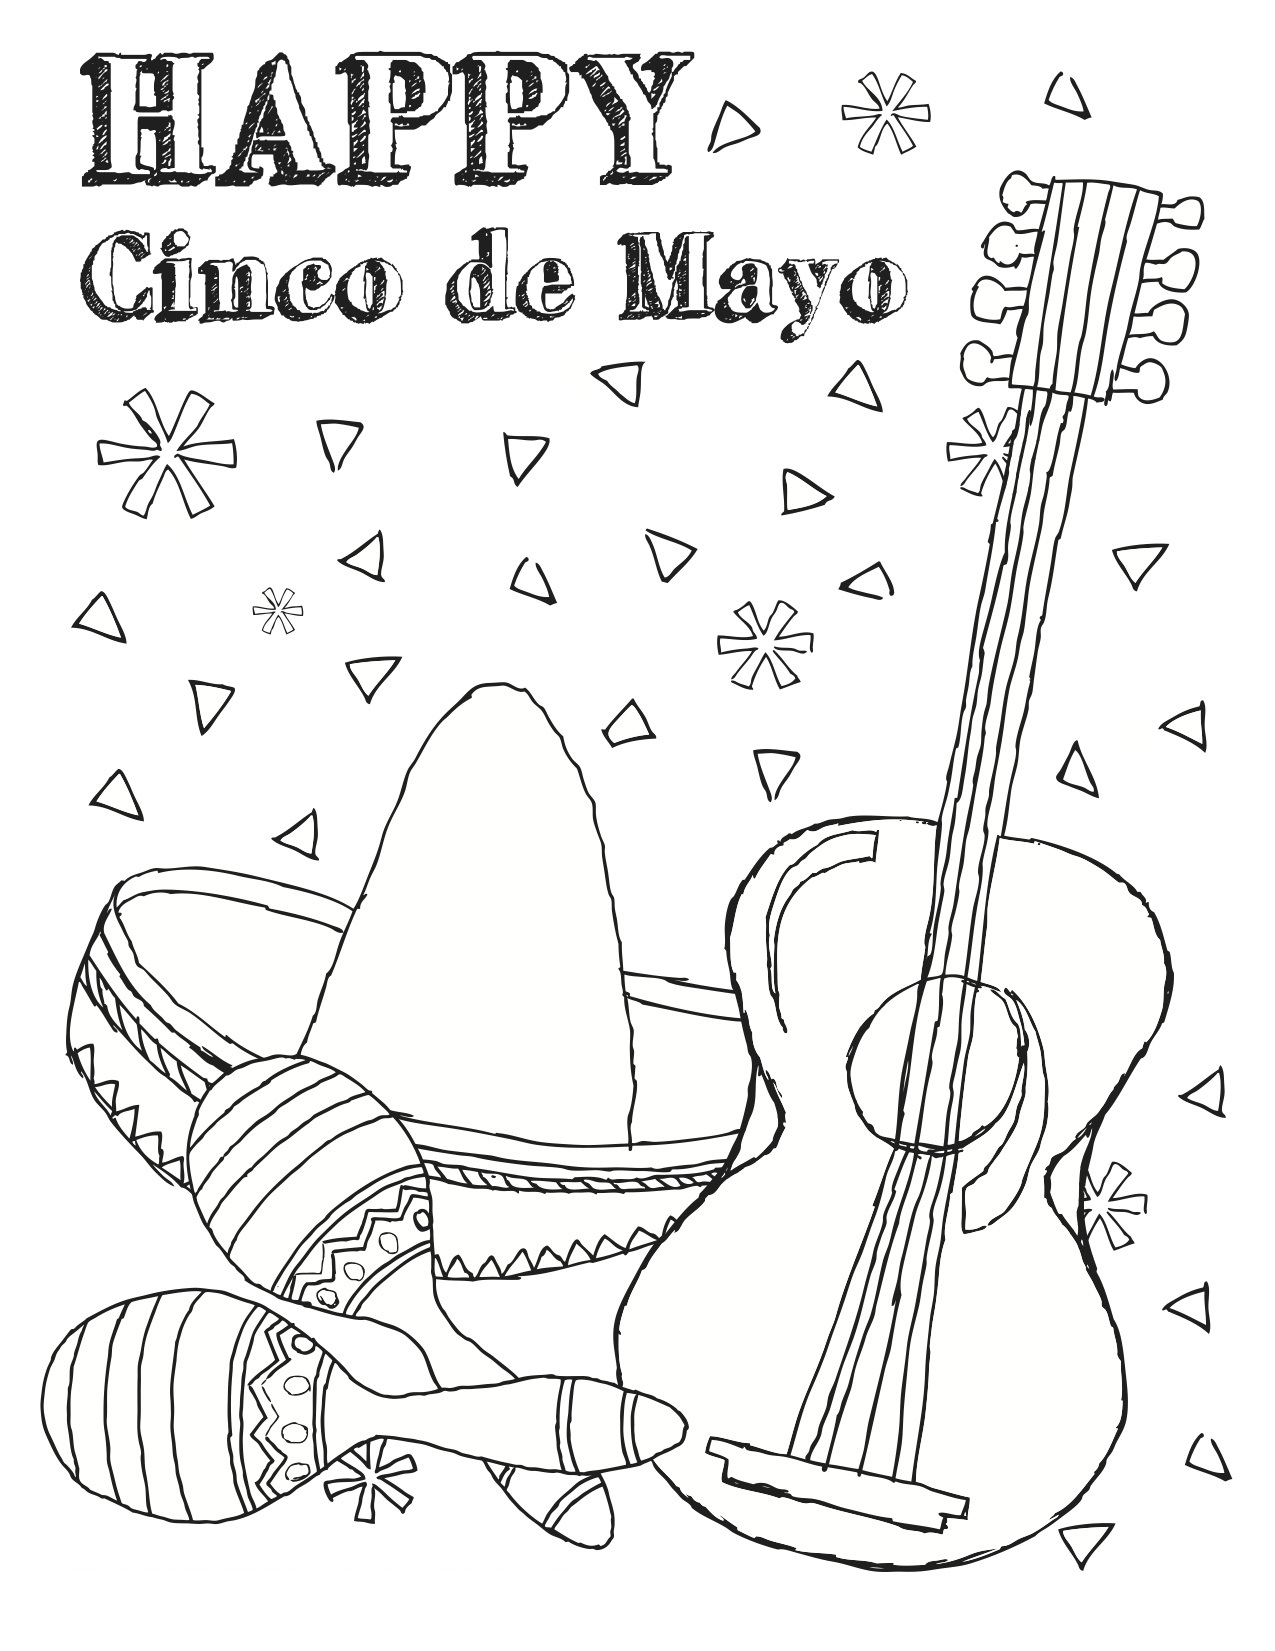 photo about Cinco De Mayo Coloring Pages Printable called Cost-free Printable Cinco De Mayo Coloring Internet pages For Children - Easiest